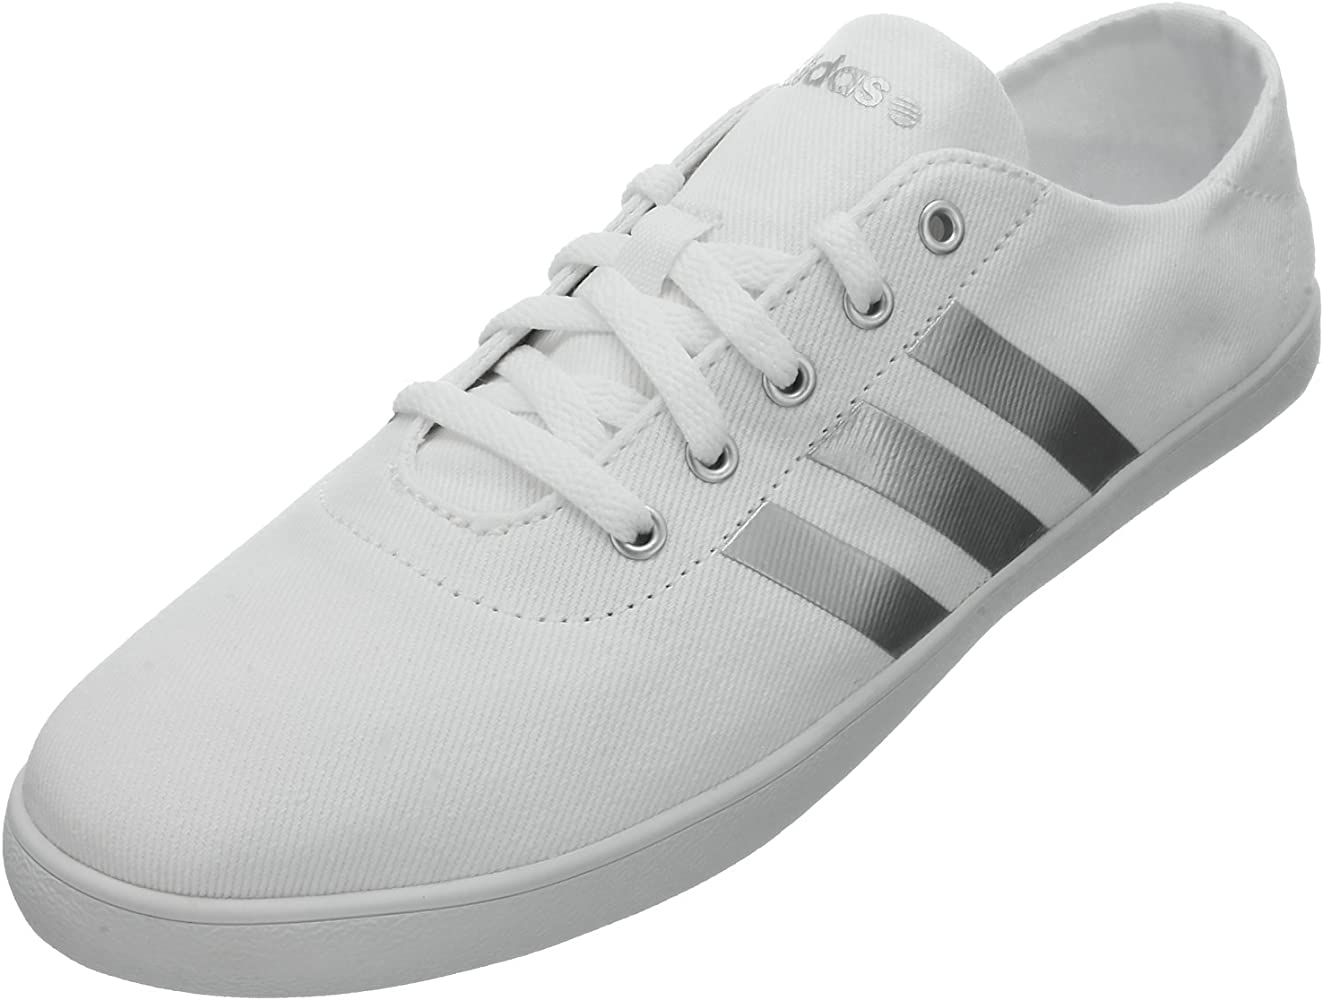 elegant shoes uk cheap sale great prices adidas Neo QT Vulc W - Zapatillas de Tela para Mujer Blanco ...